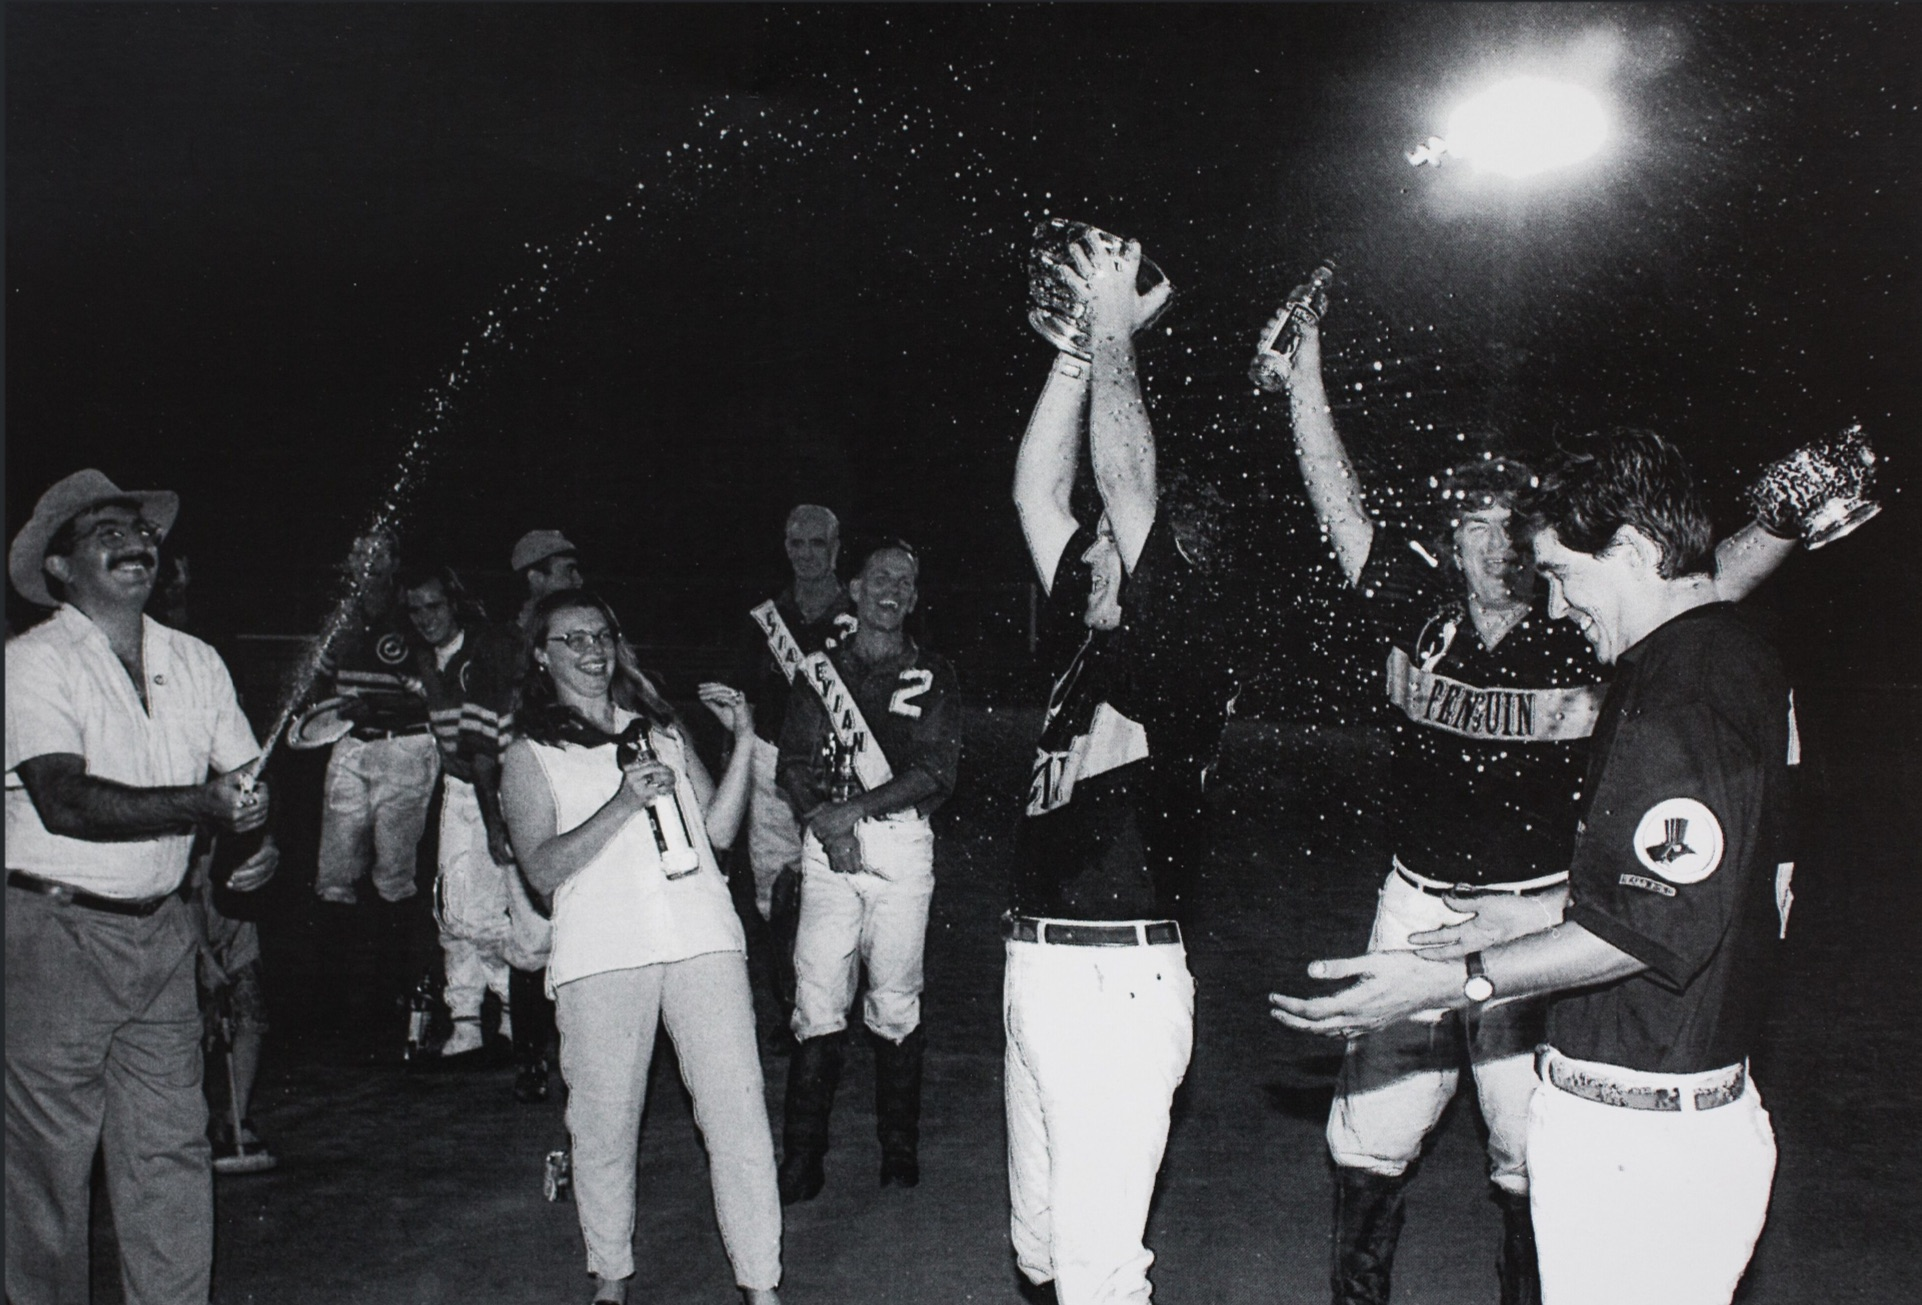 "Penguin Vodka founder (left) celebrates his team victory with players (from left to right) Peter Arundel, Rick Barrow and Juan Salinas. ""Big Joe"" Muldoon is visible in the background. Photo courtesy of Peter Arundel."